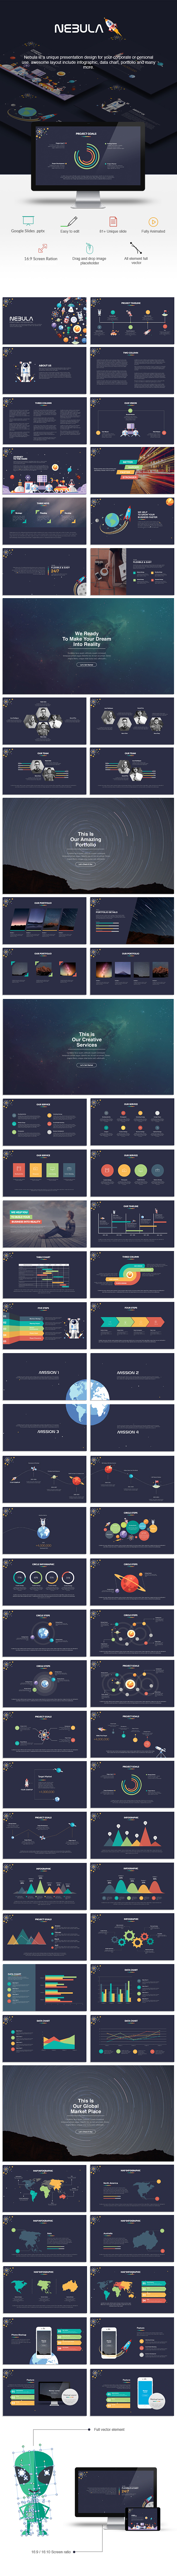 GraphicRiver Nebula Google Slides Presentation 21159335